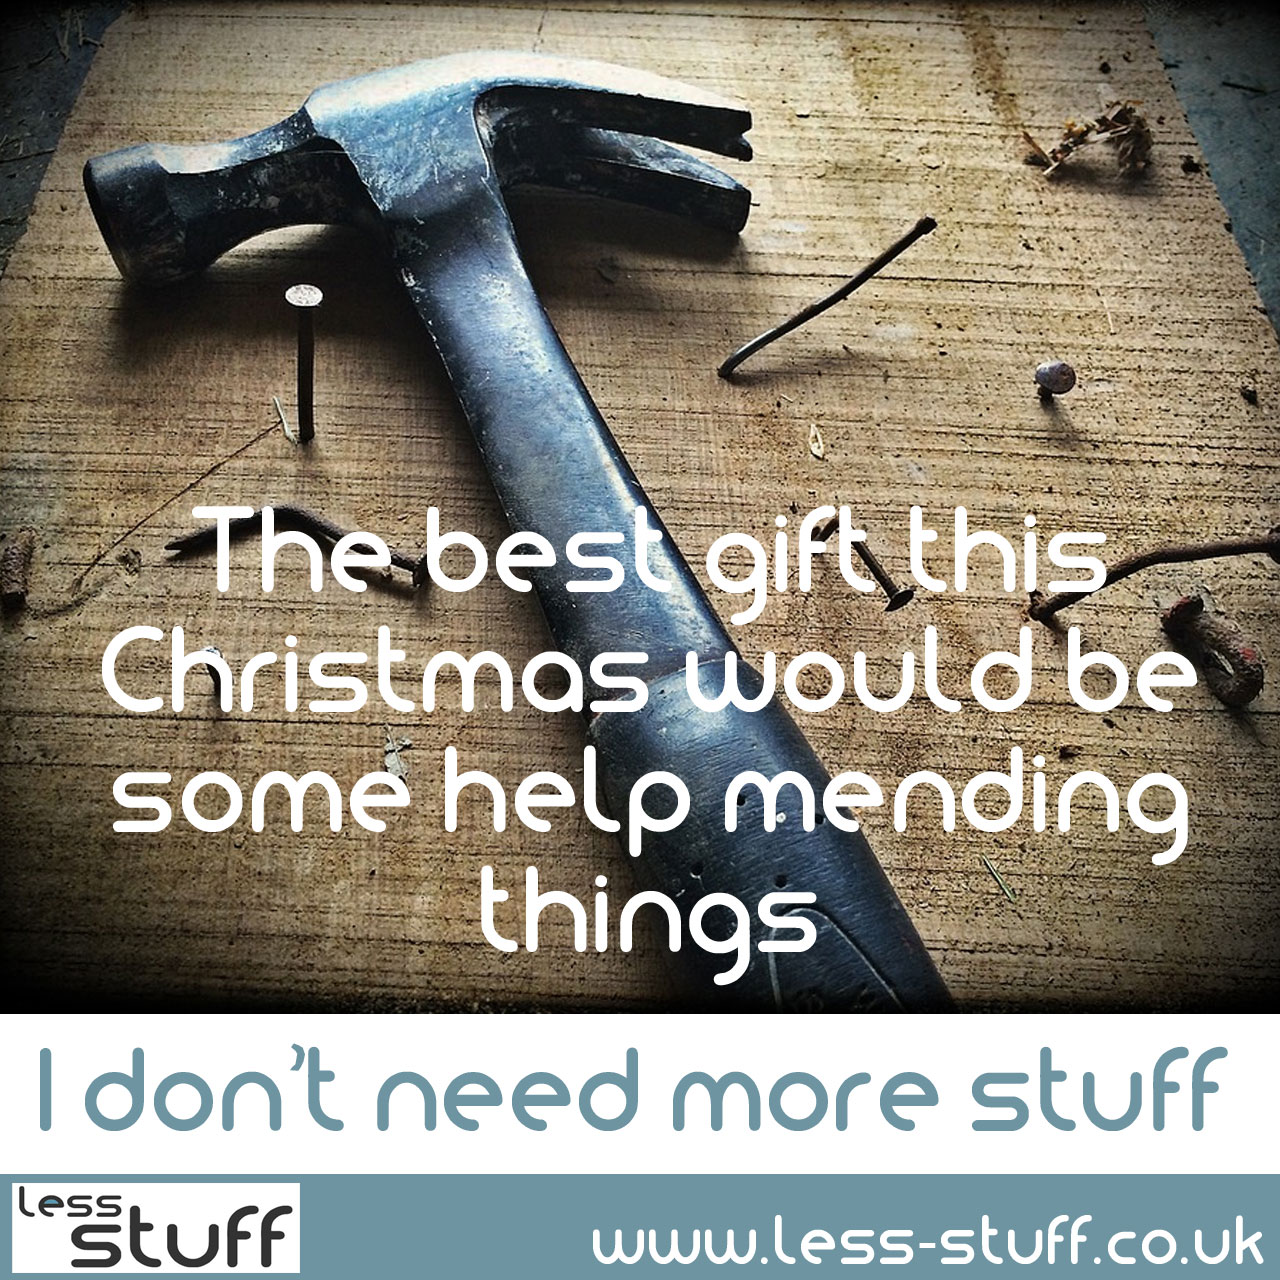 less-stuff-more-mending